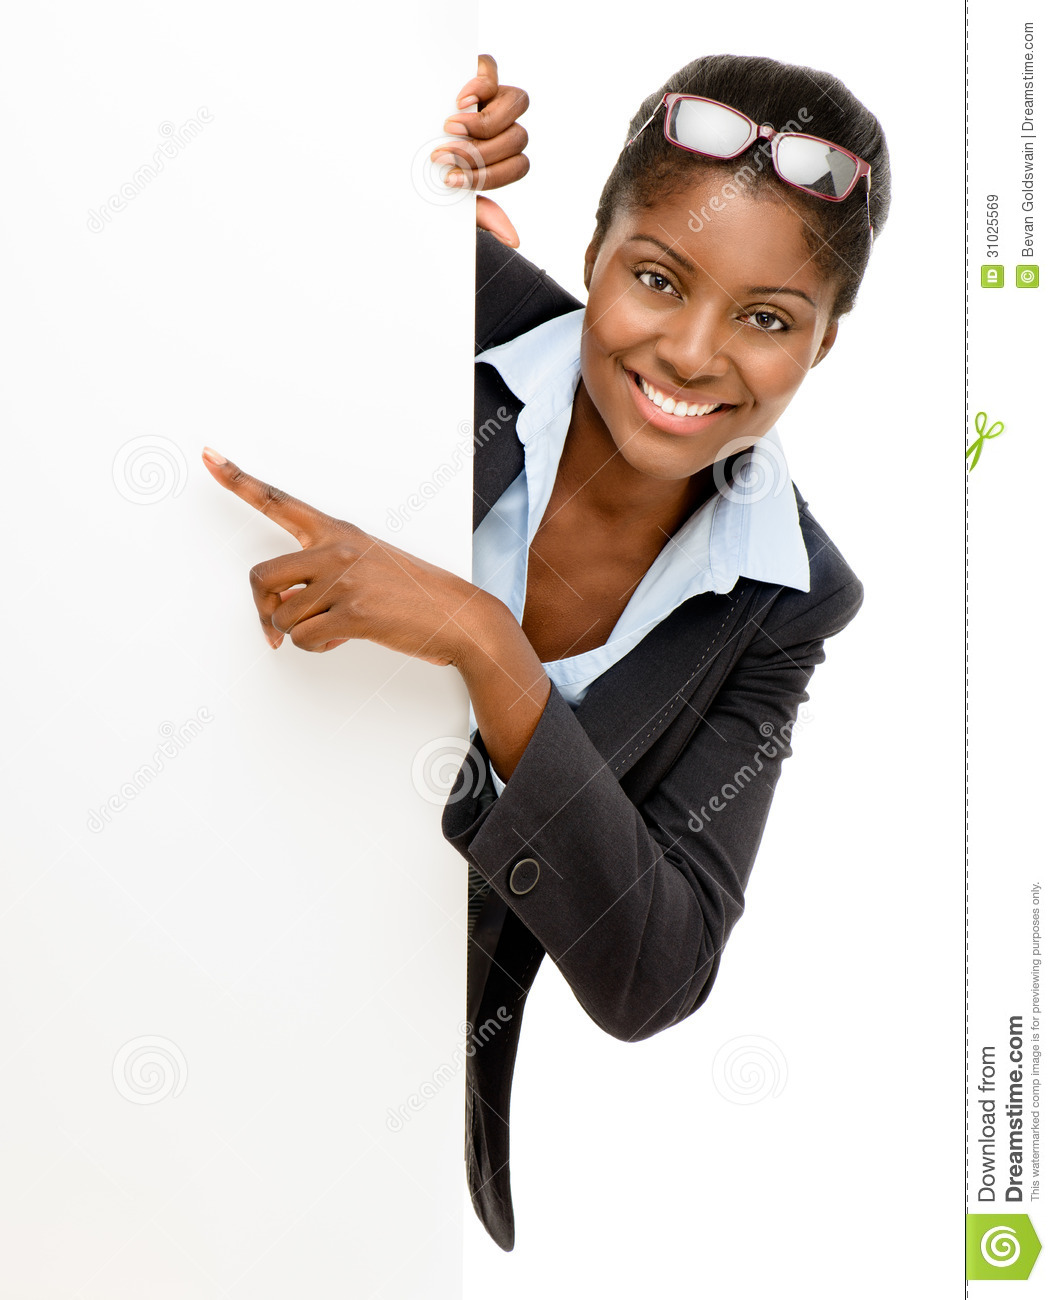 happy-african-american-woman-pointing-billboard-sign-white-ba-business-31025569.jpg